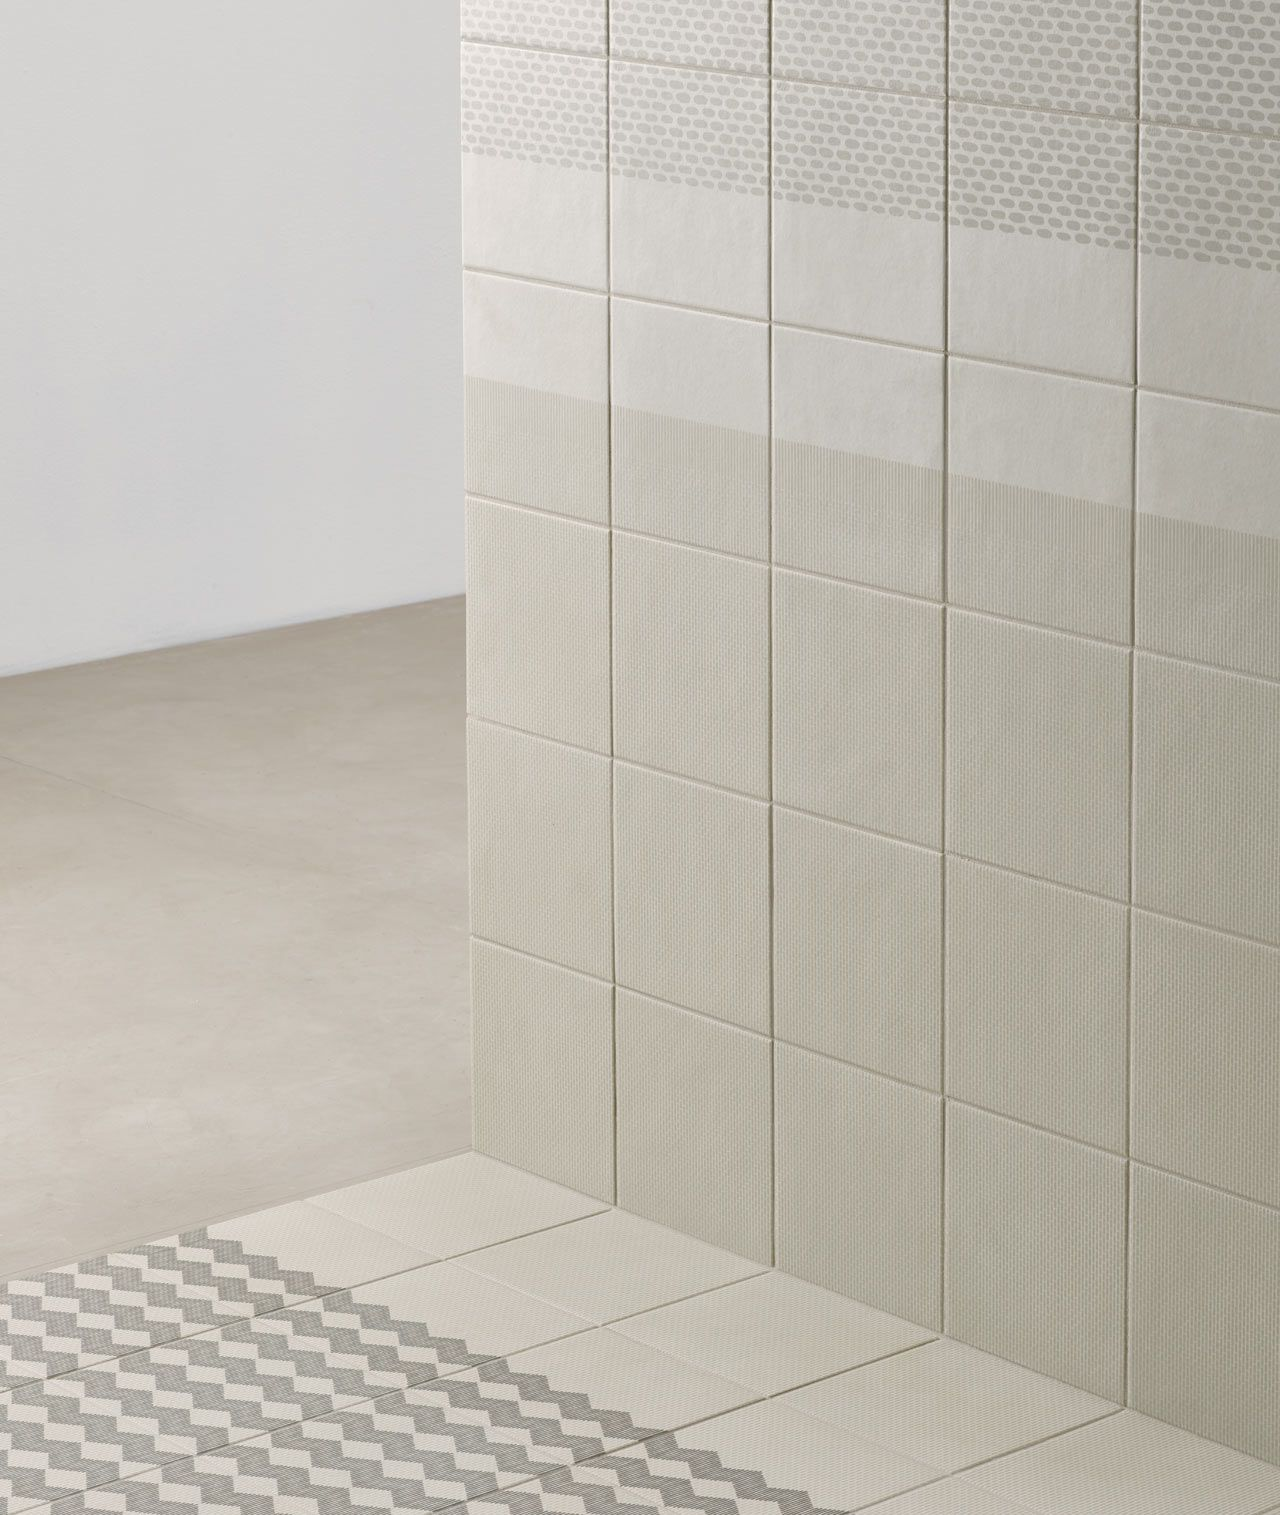 Raw Edges Introduces Latest Tile Collections for Mutina - Design Milk